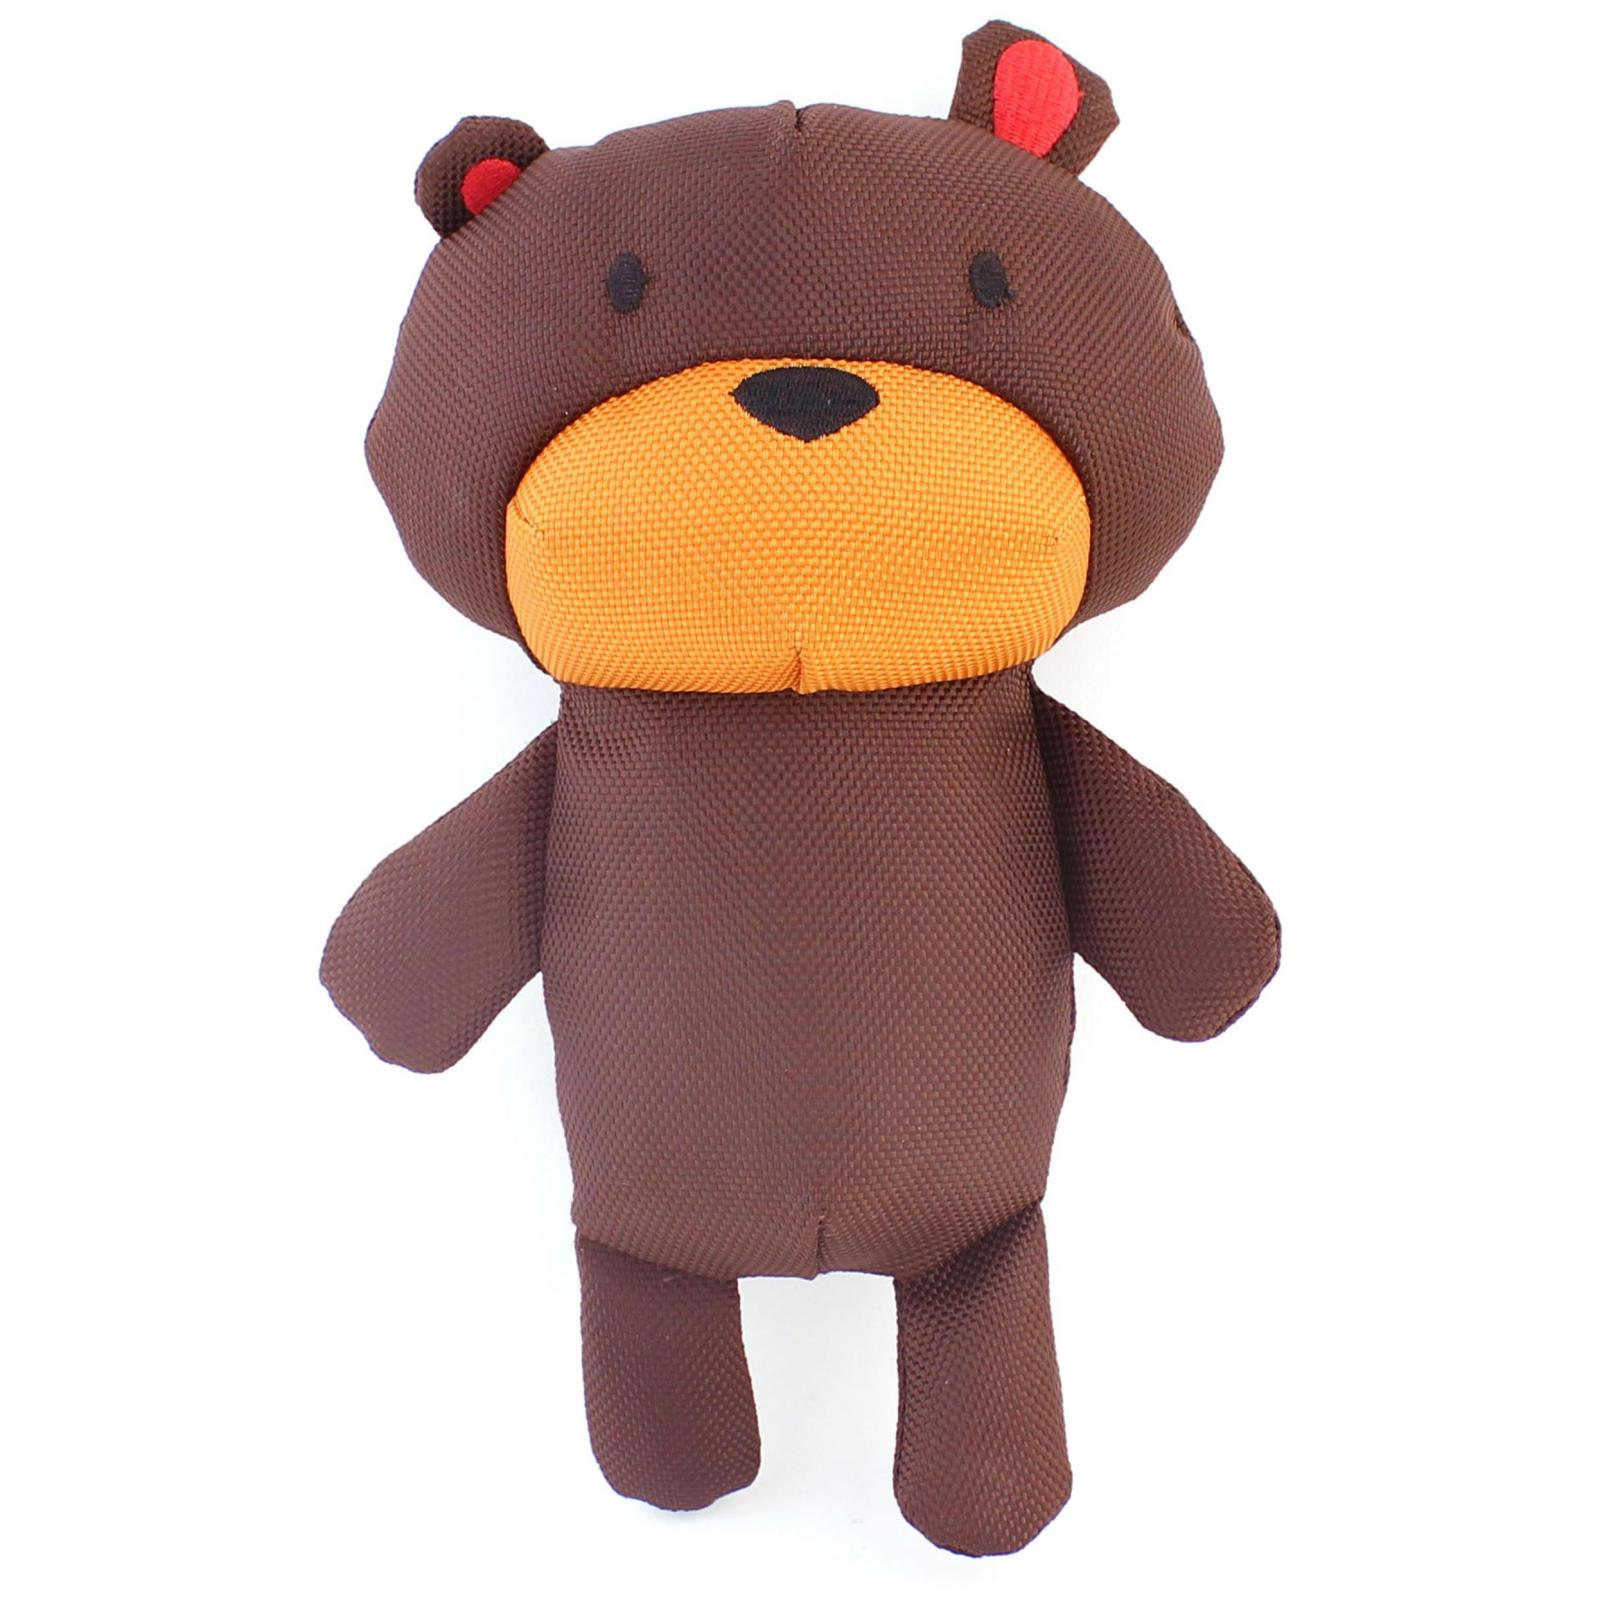 BECO Beco Soft Toy - Teddy - Small